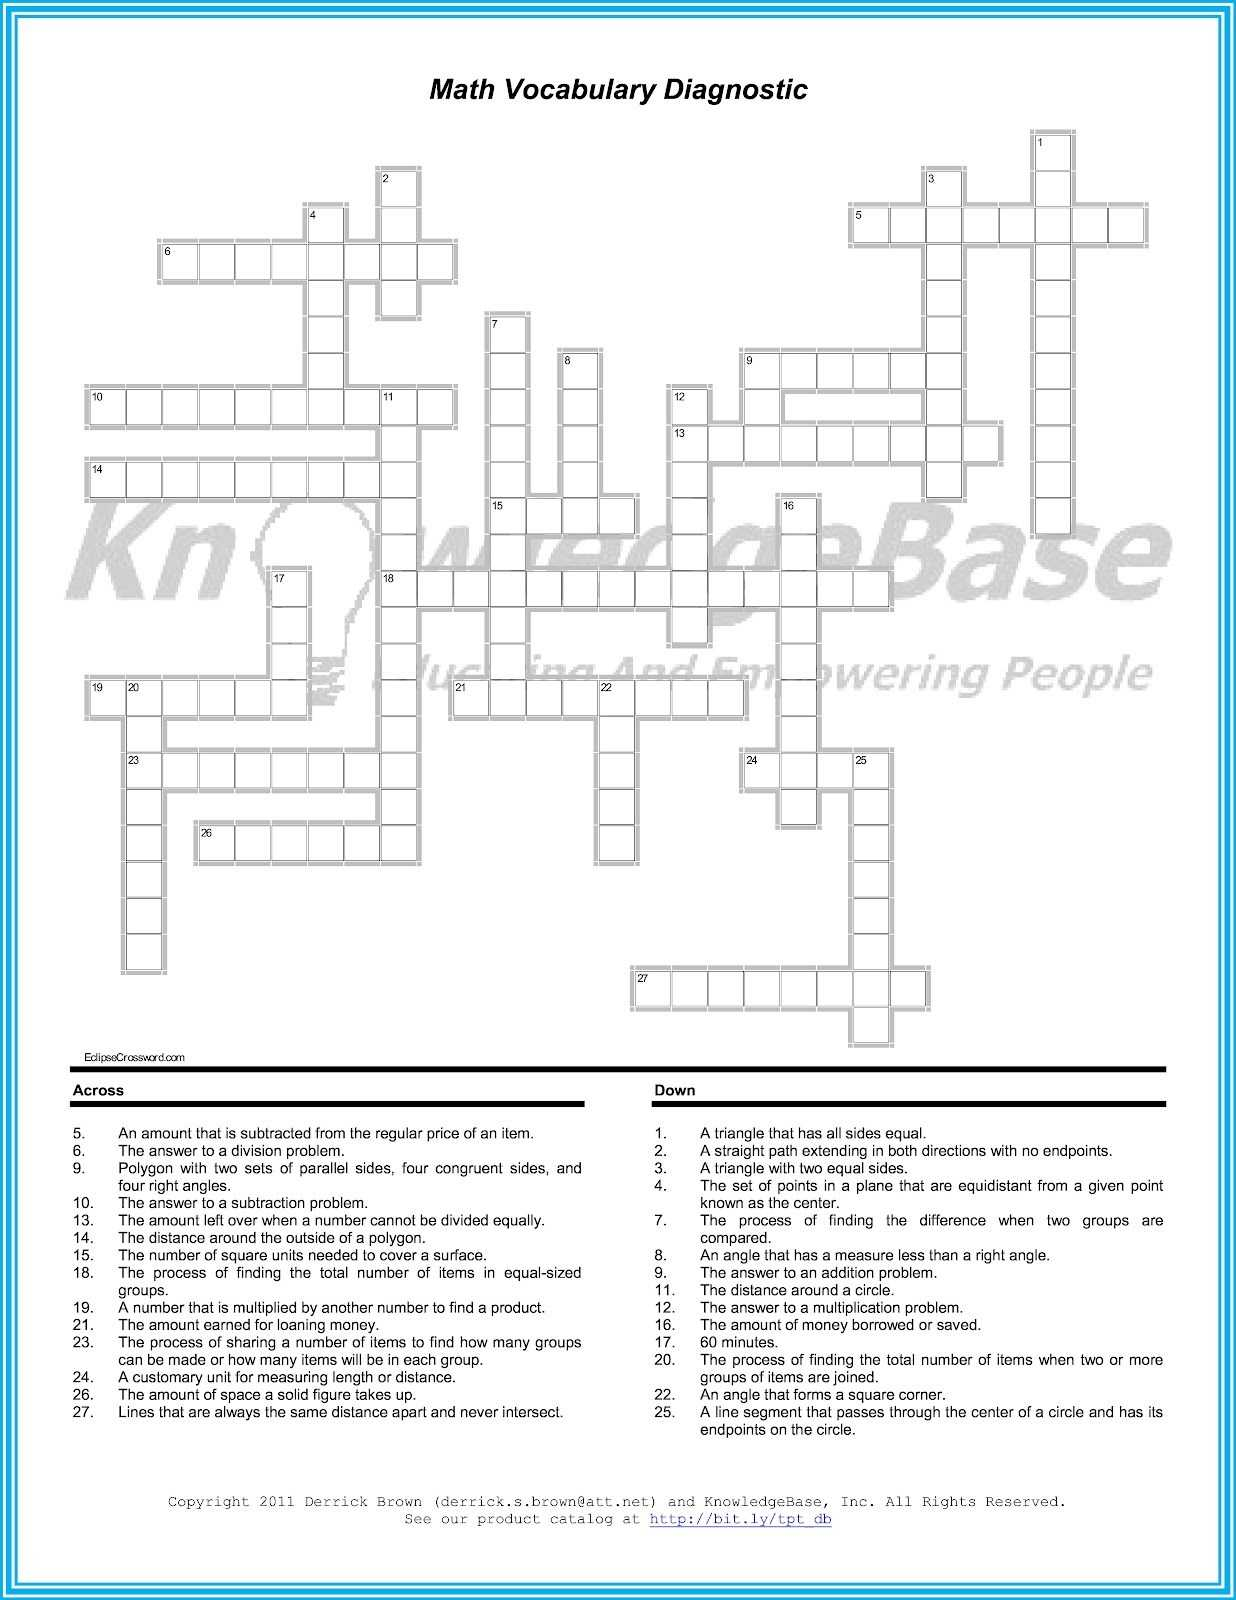 Suffix Ly Worksheet Pdf together with Crossword Puzzle for Elementary Students Pdf Inspirations Music